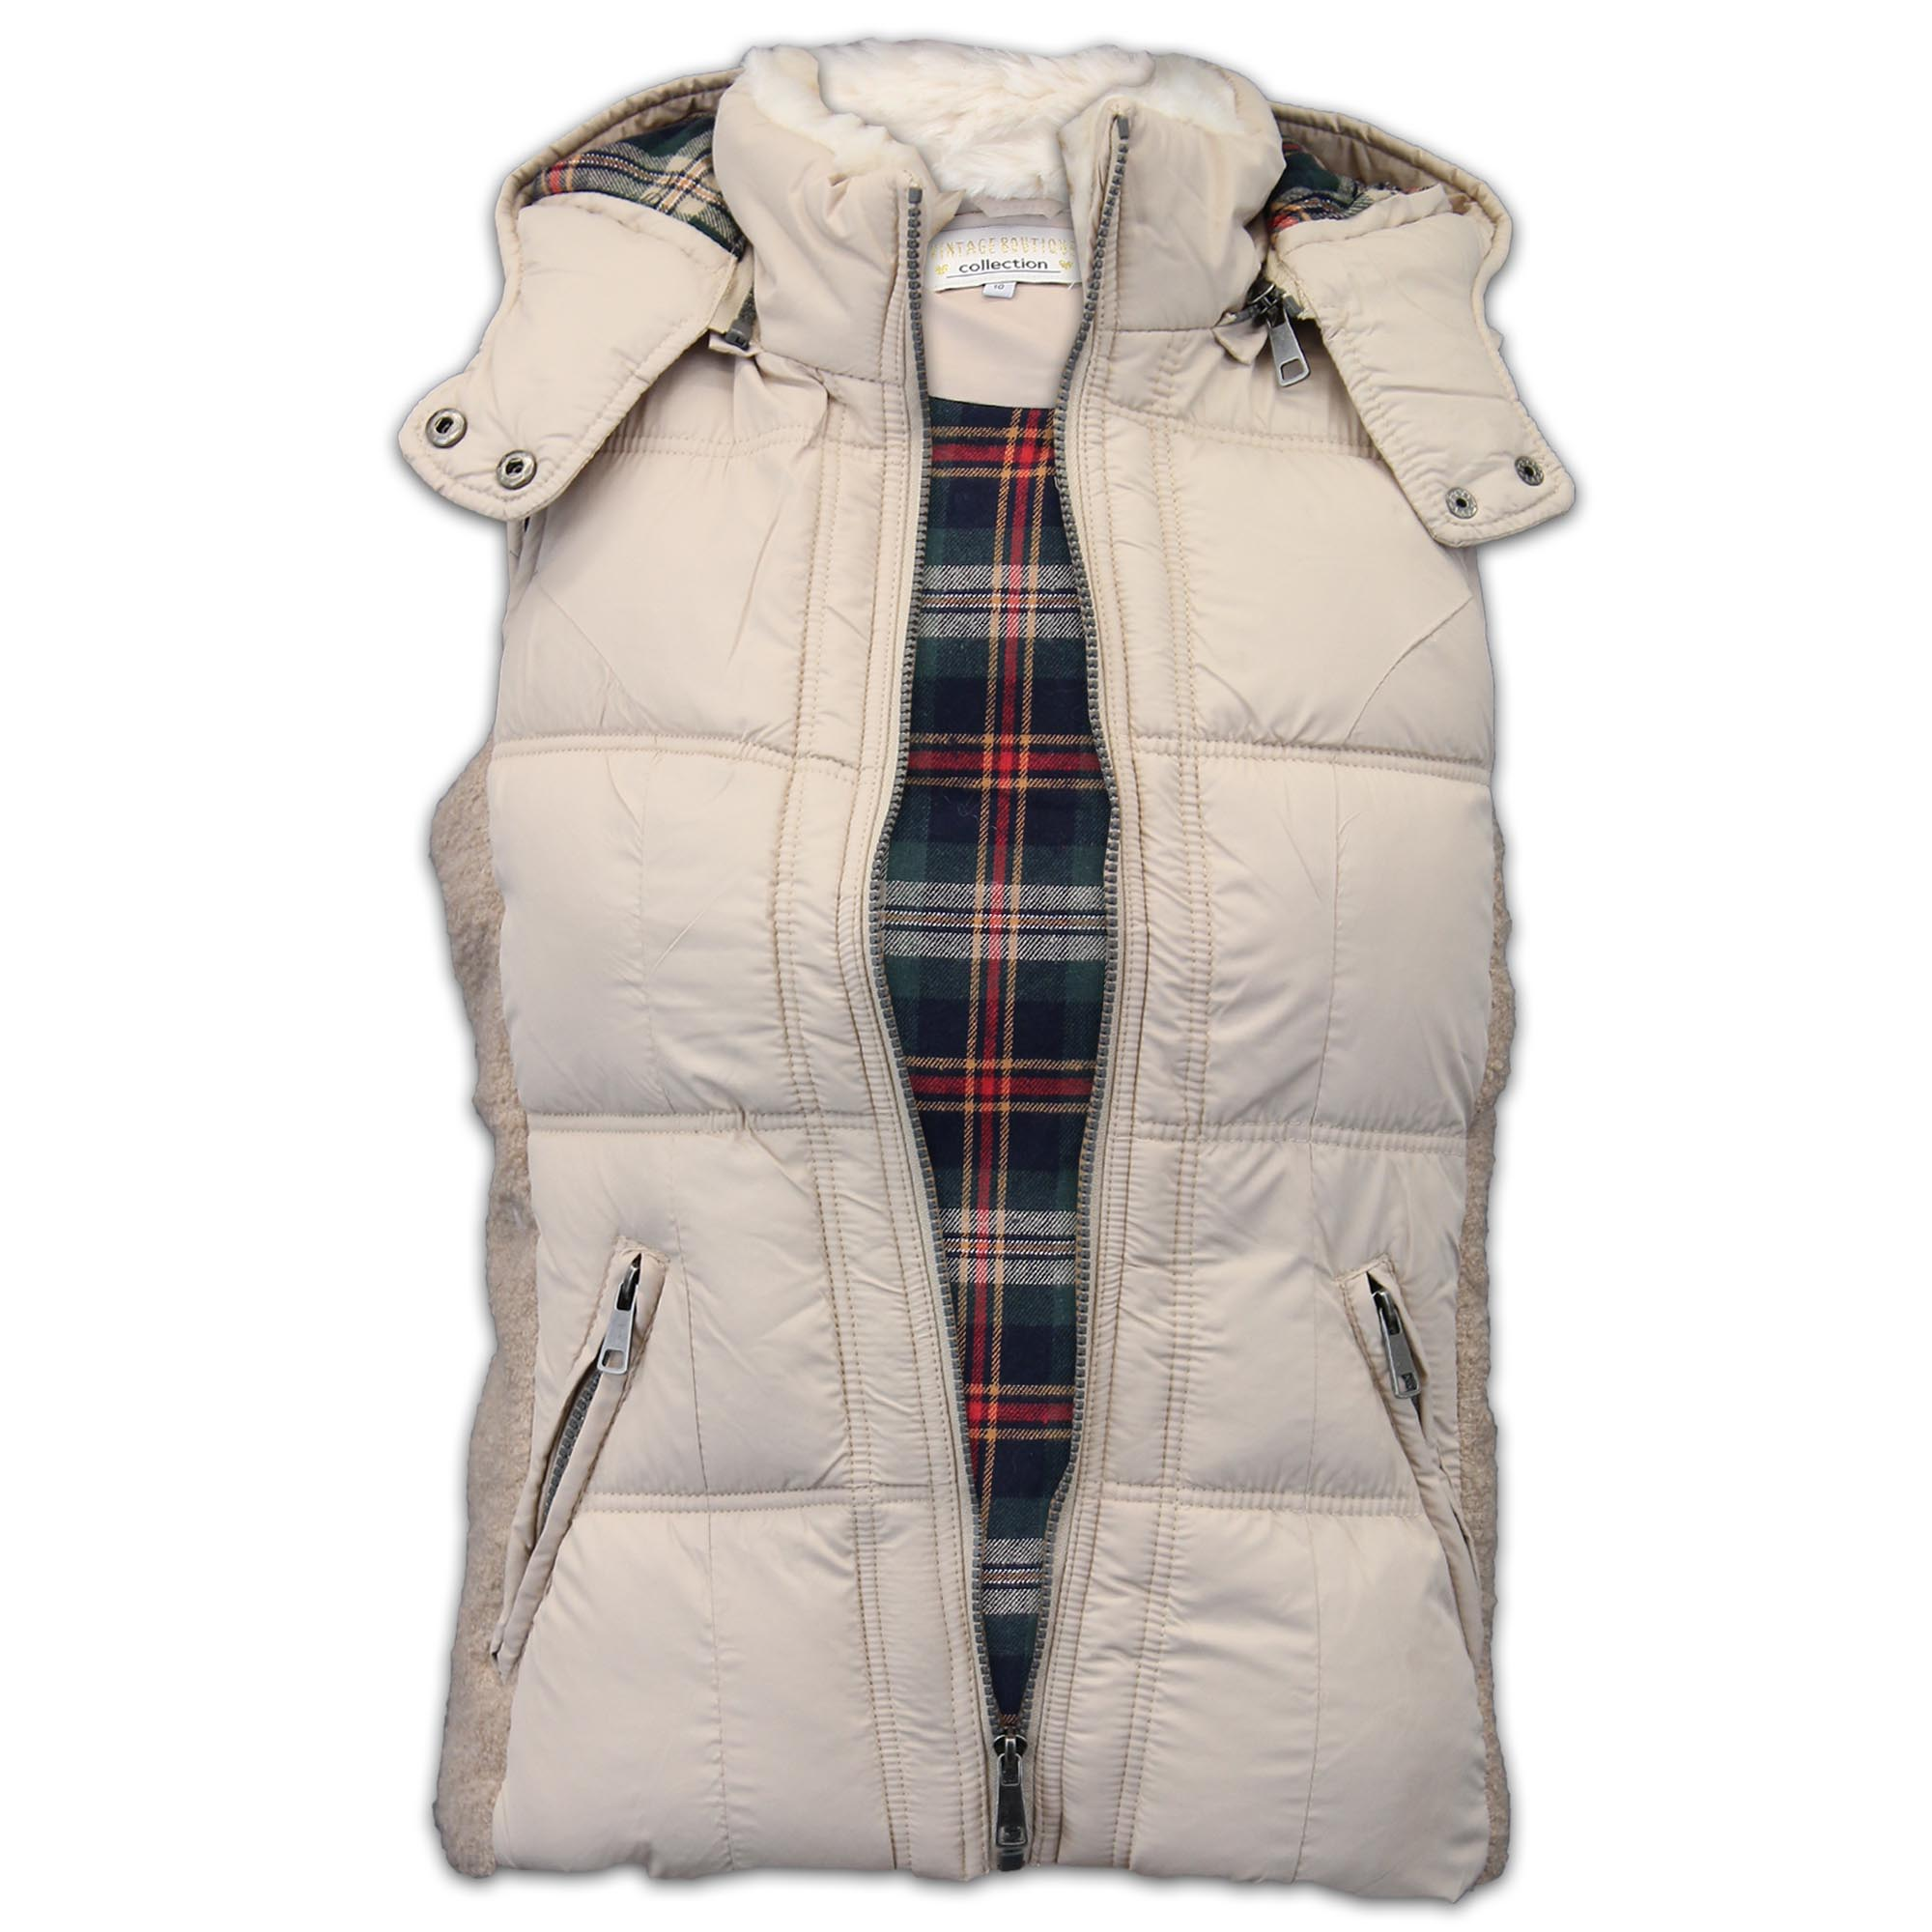 Womens Jack Wills Hooded Gilet Size 14 in pink with faux fur trimmed Removable hood, zip pockets and zip and Popper front, feather and down filled in immaculate condition worn once or twice. Women Hooded Warm Gilet Outwear Vest Faux Fur Winter Waistcoat Long Jacket Coat. £ Buy it now. Free P&P.